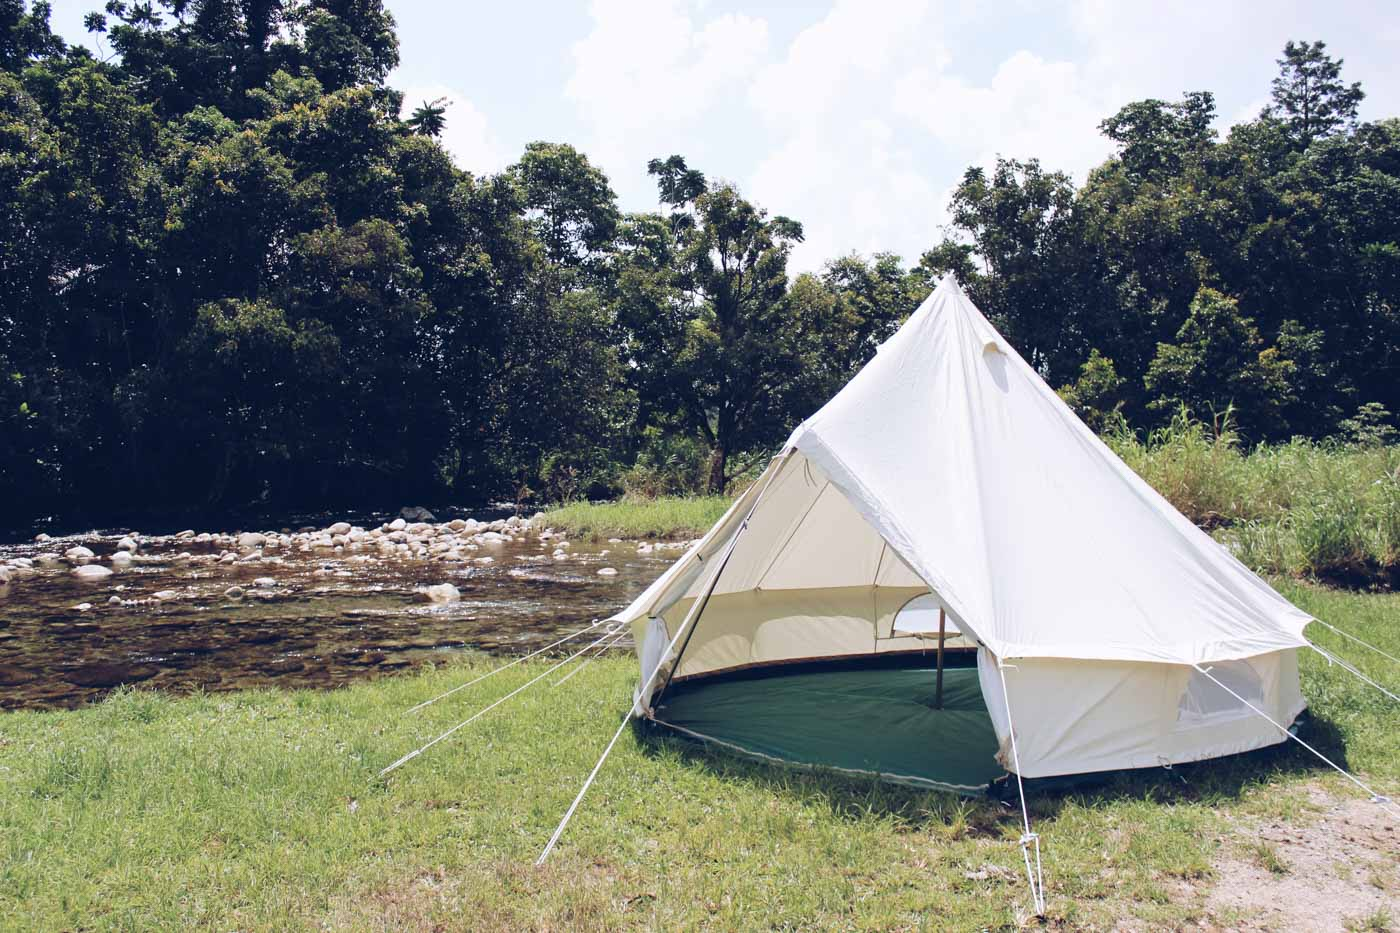 the_Collection_co_grazing_table_cairns_weddings_catering_grazing_platter_hire_pop_up_picnic_bell_tent_event_hire_styling-8.jpg